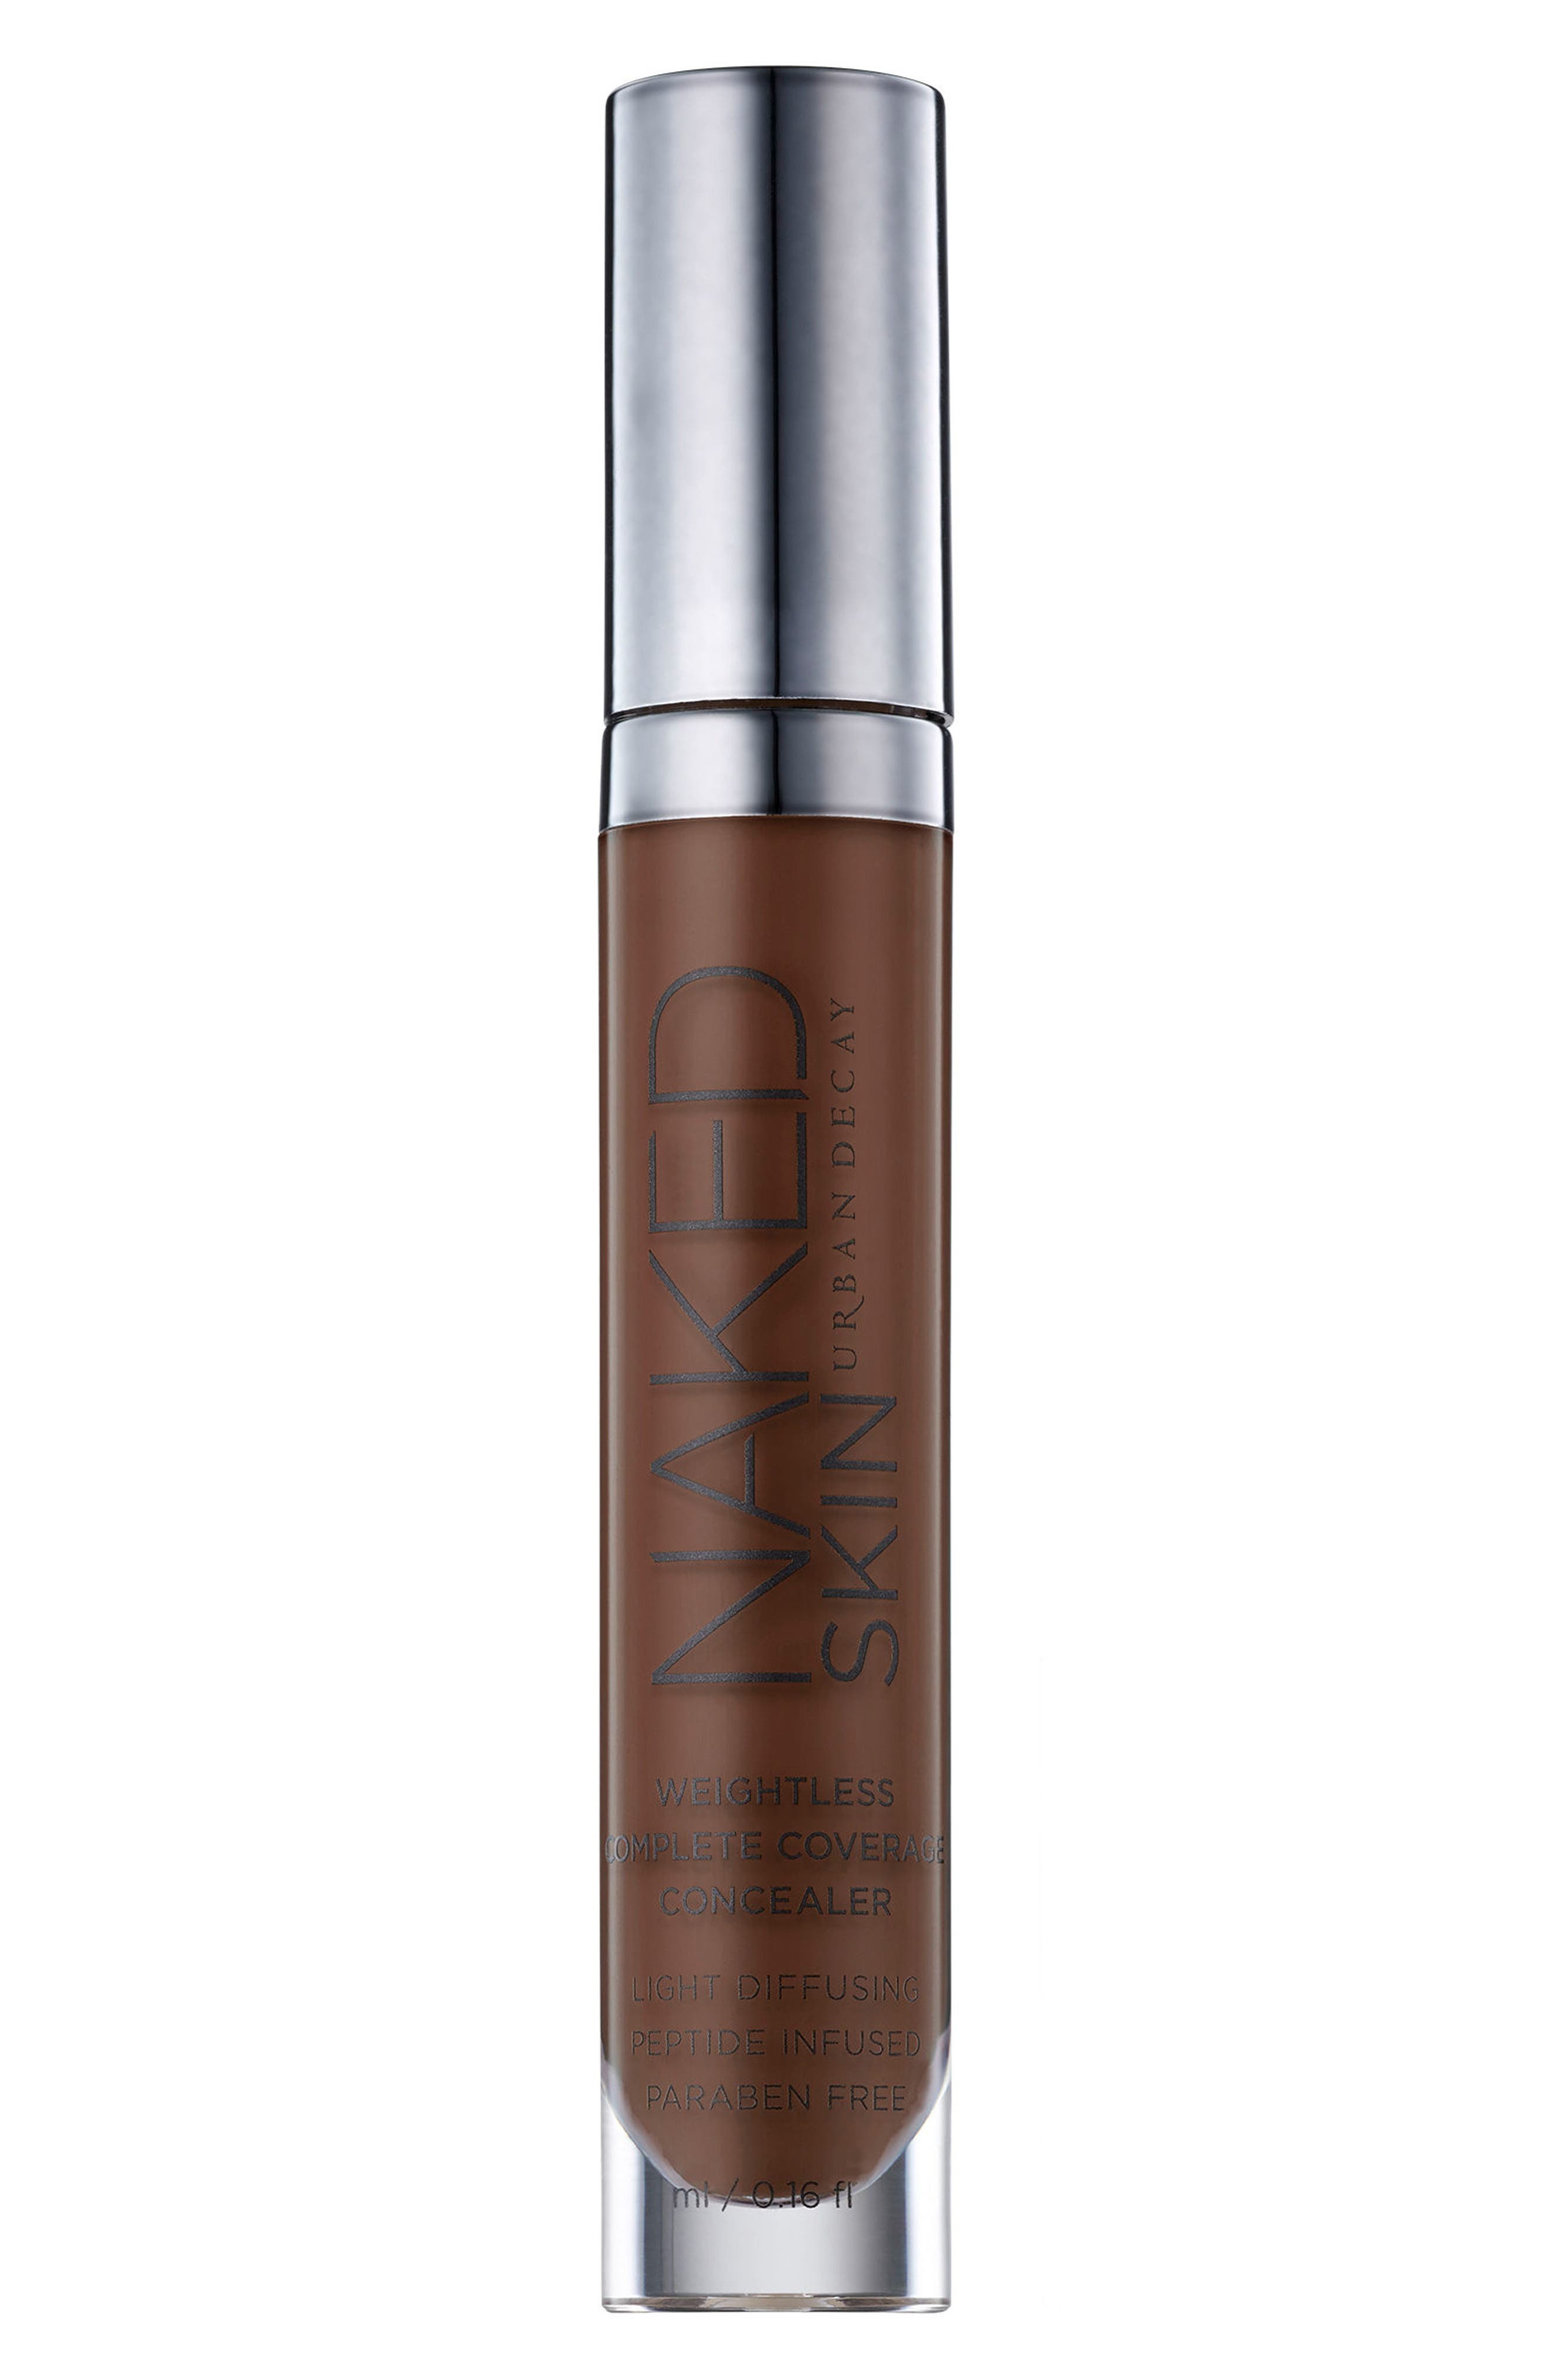 Naked Skin Weightless Complete Coverage Concealer,                         Main,                         color, EXTRA DEEP NEUTRAL